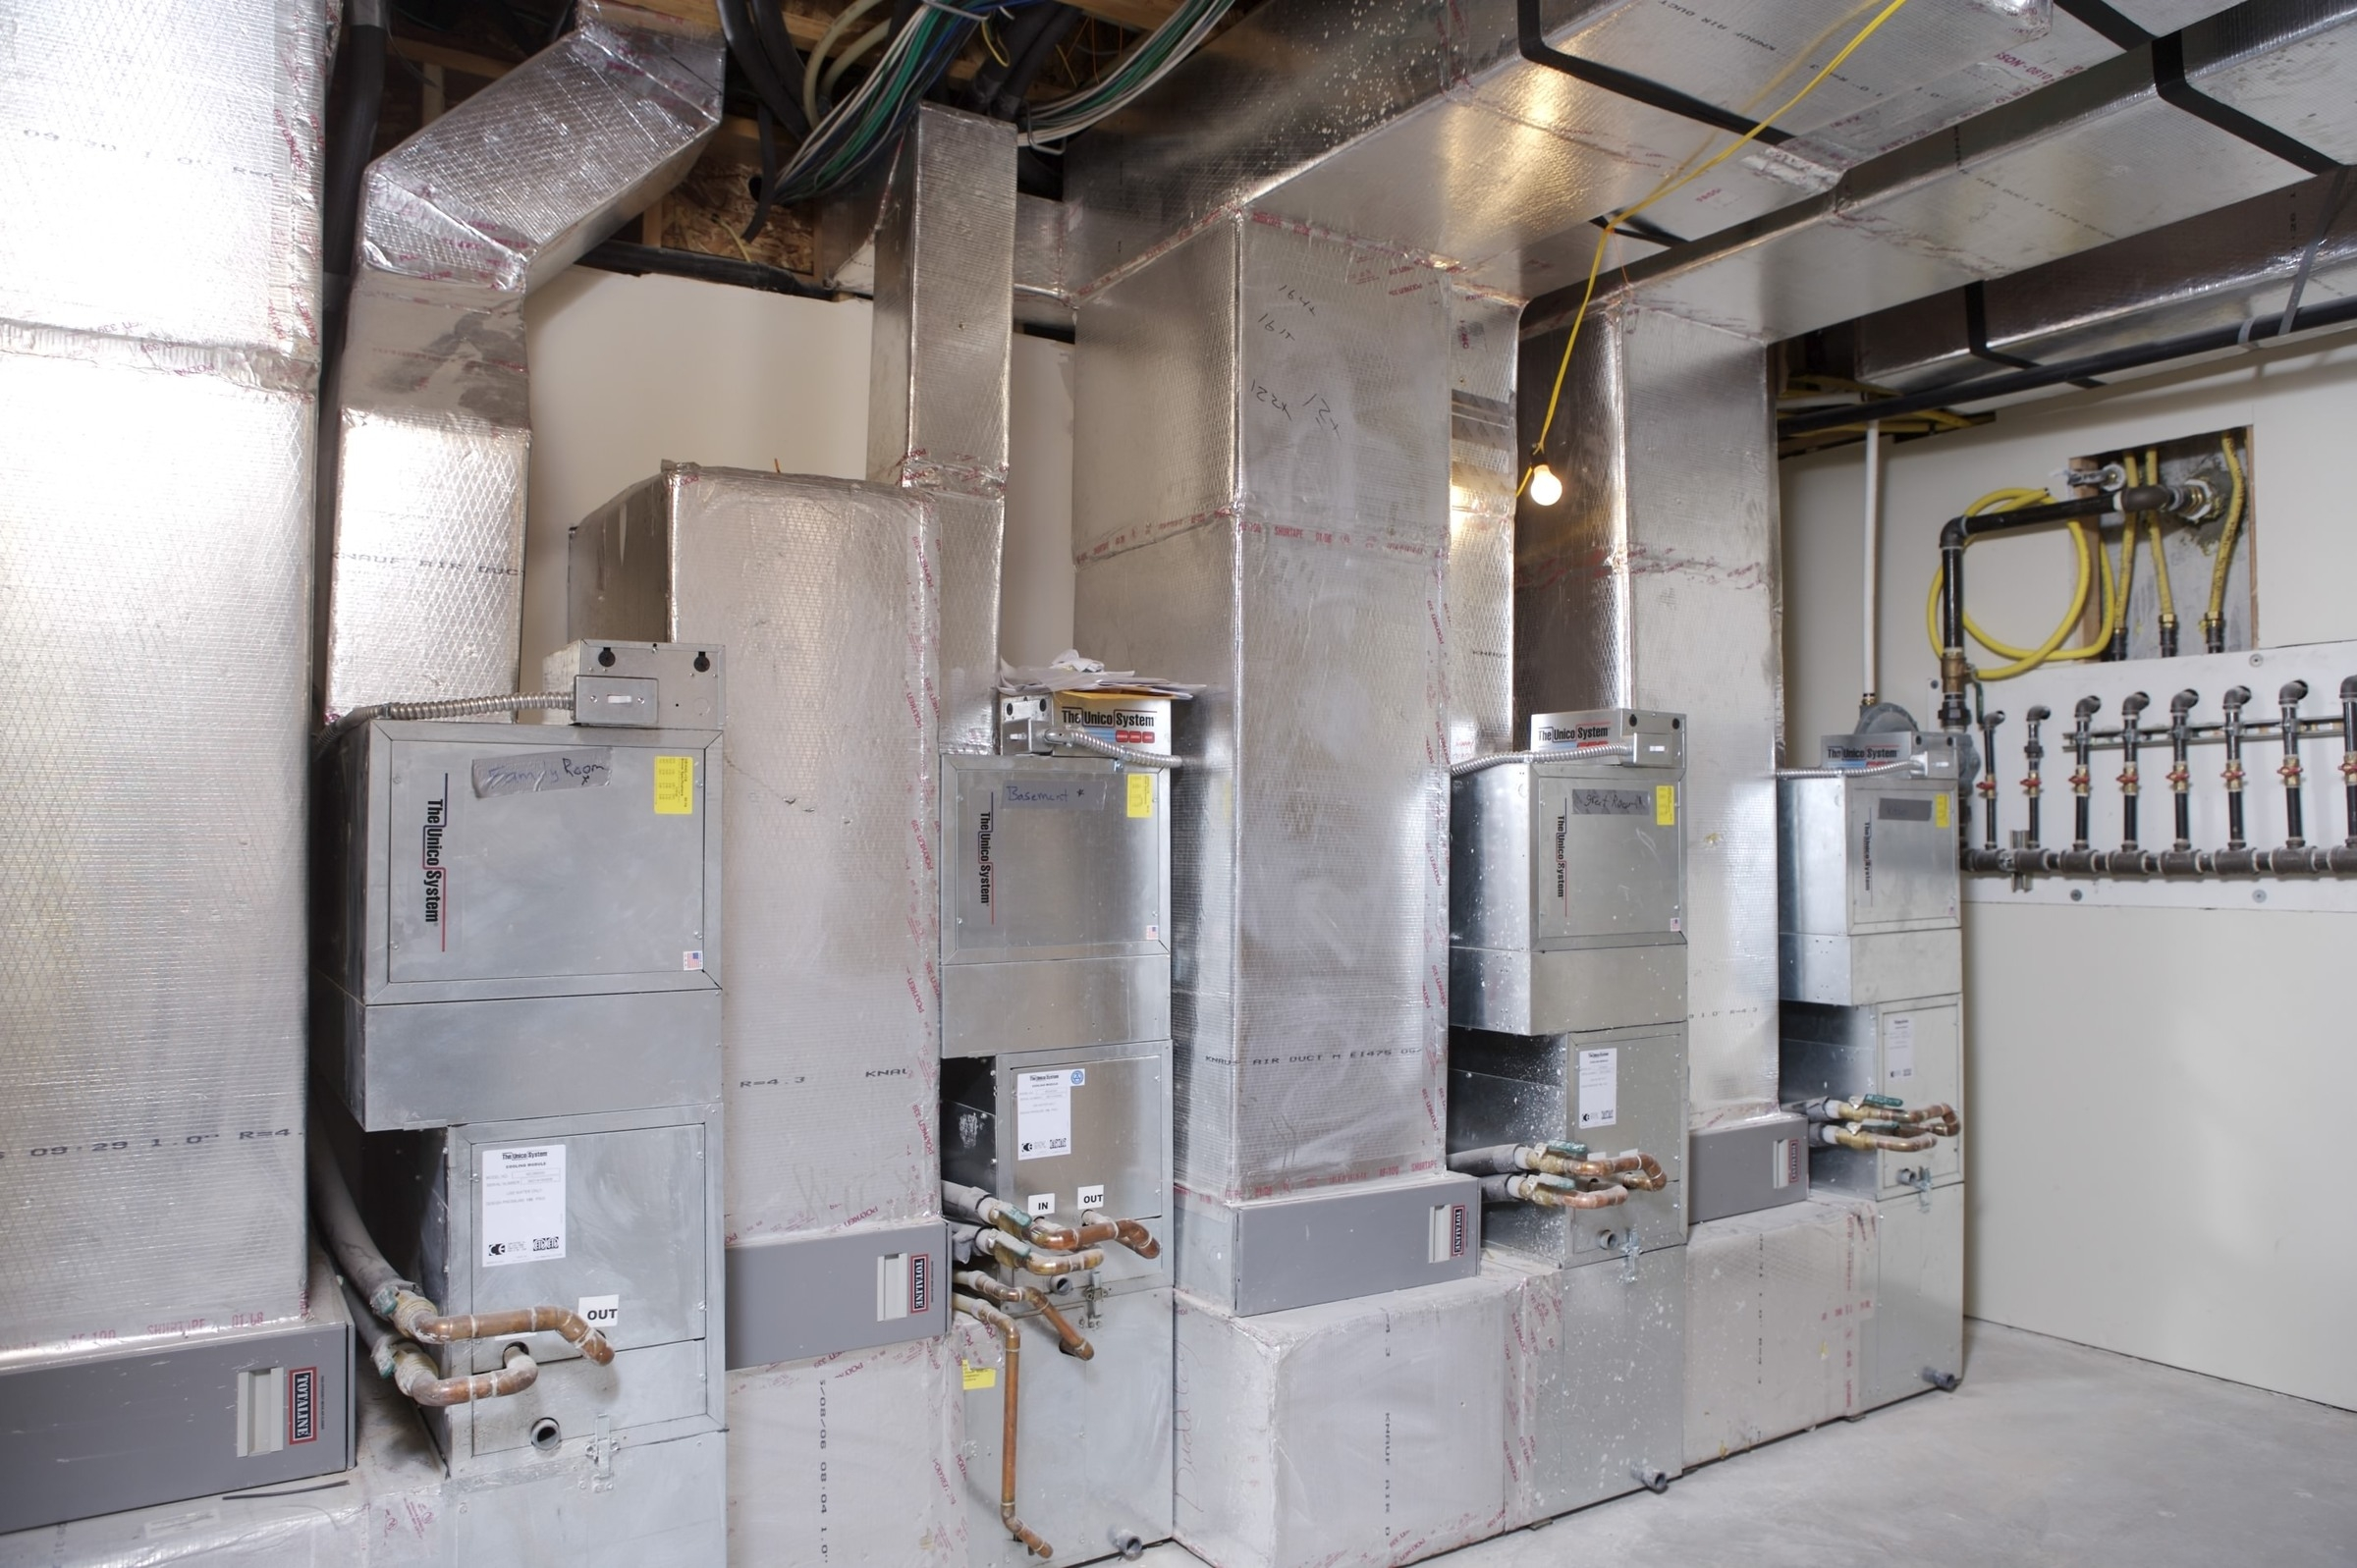 Basement Heating And Cooling Systems